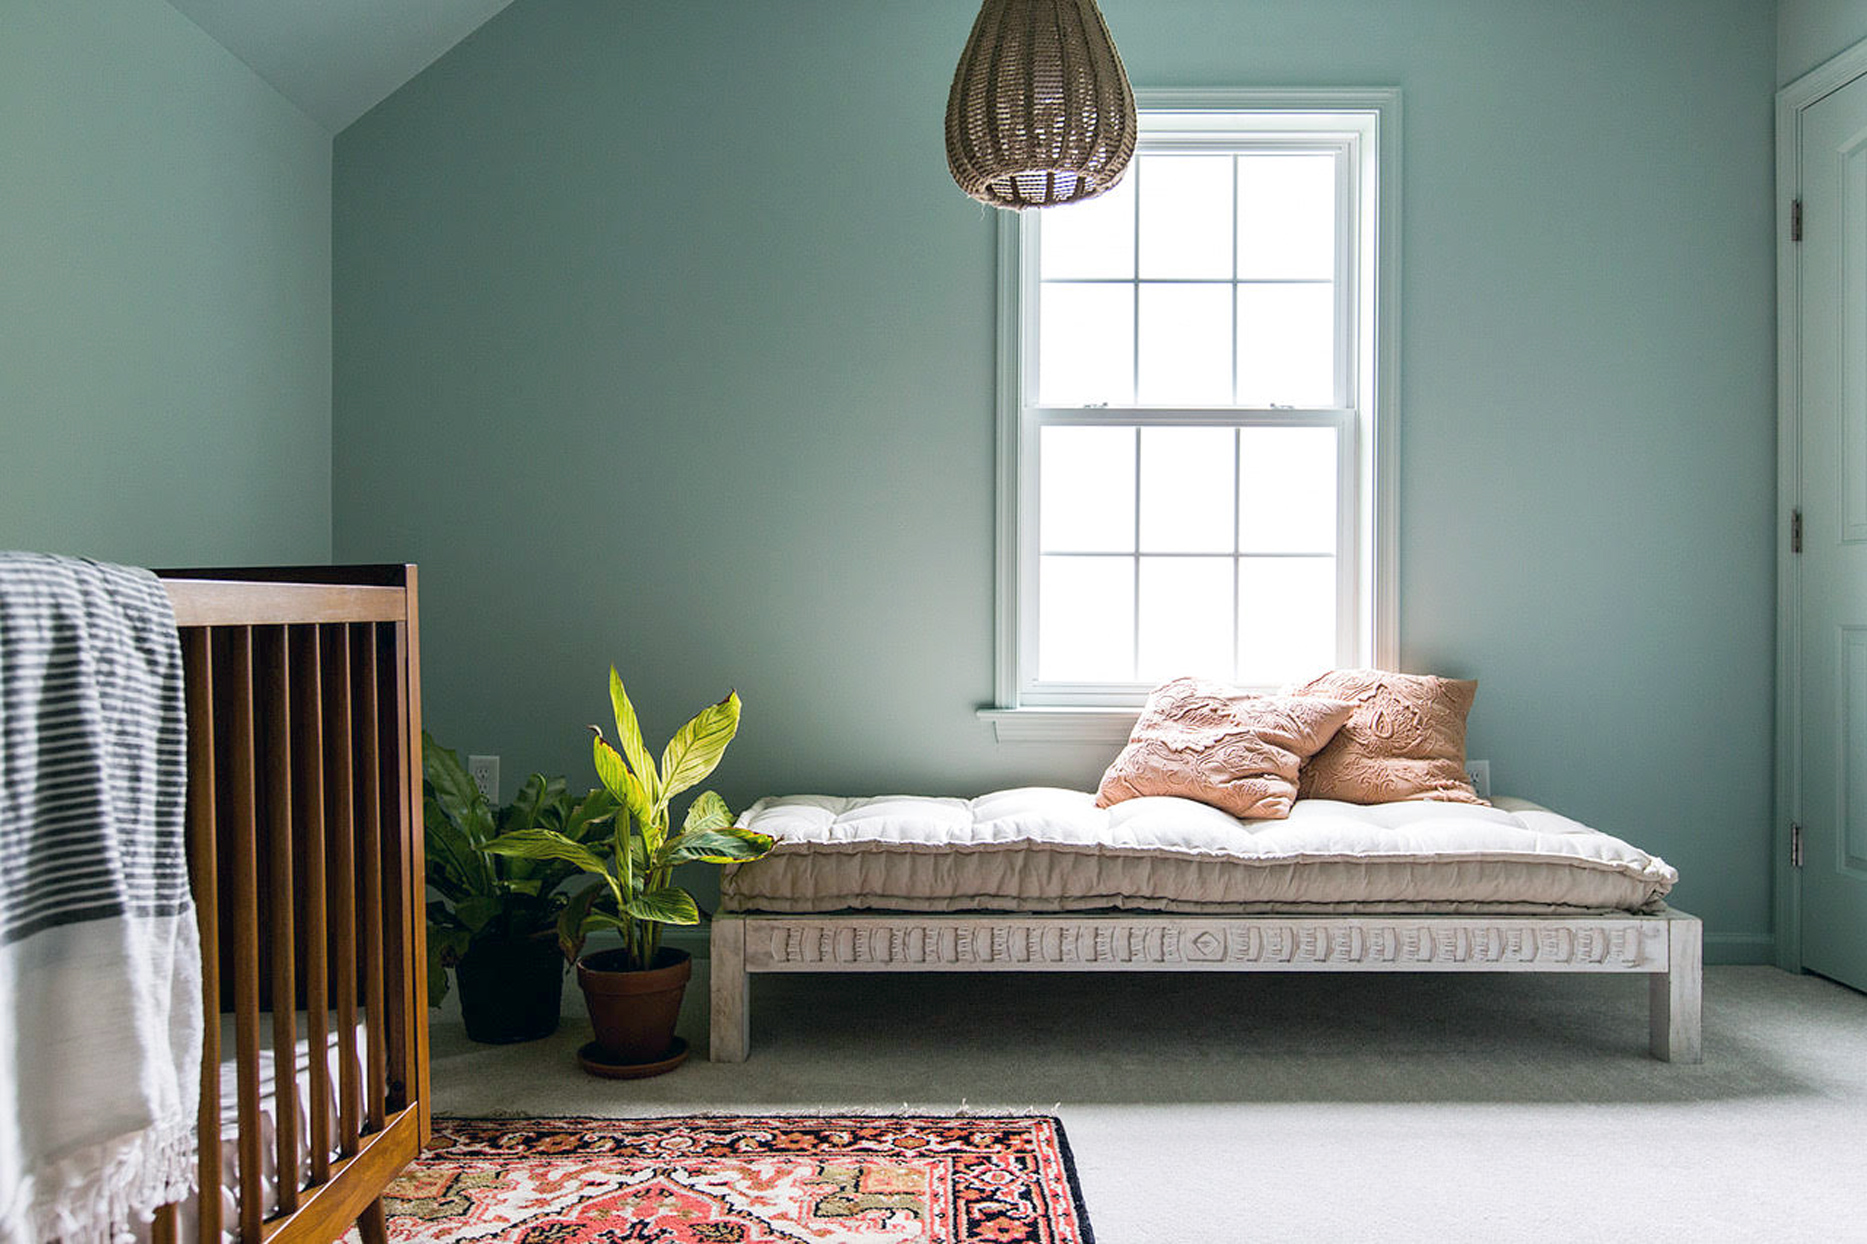 teal room with daybed and crib